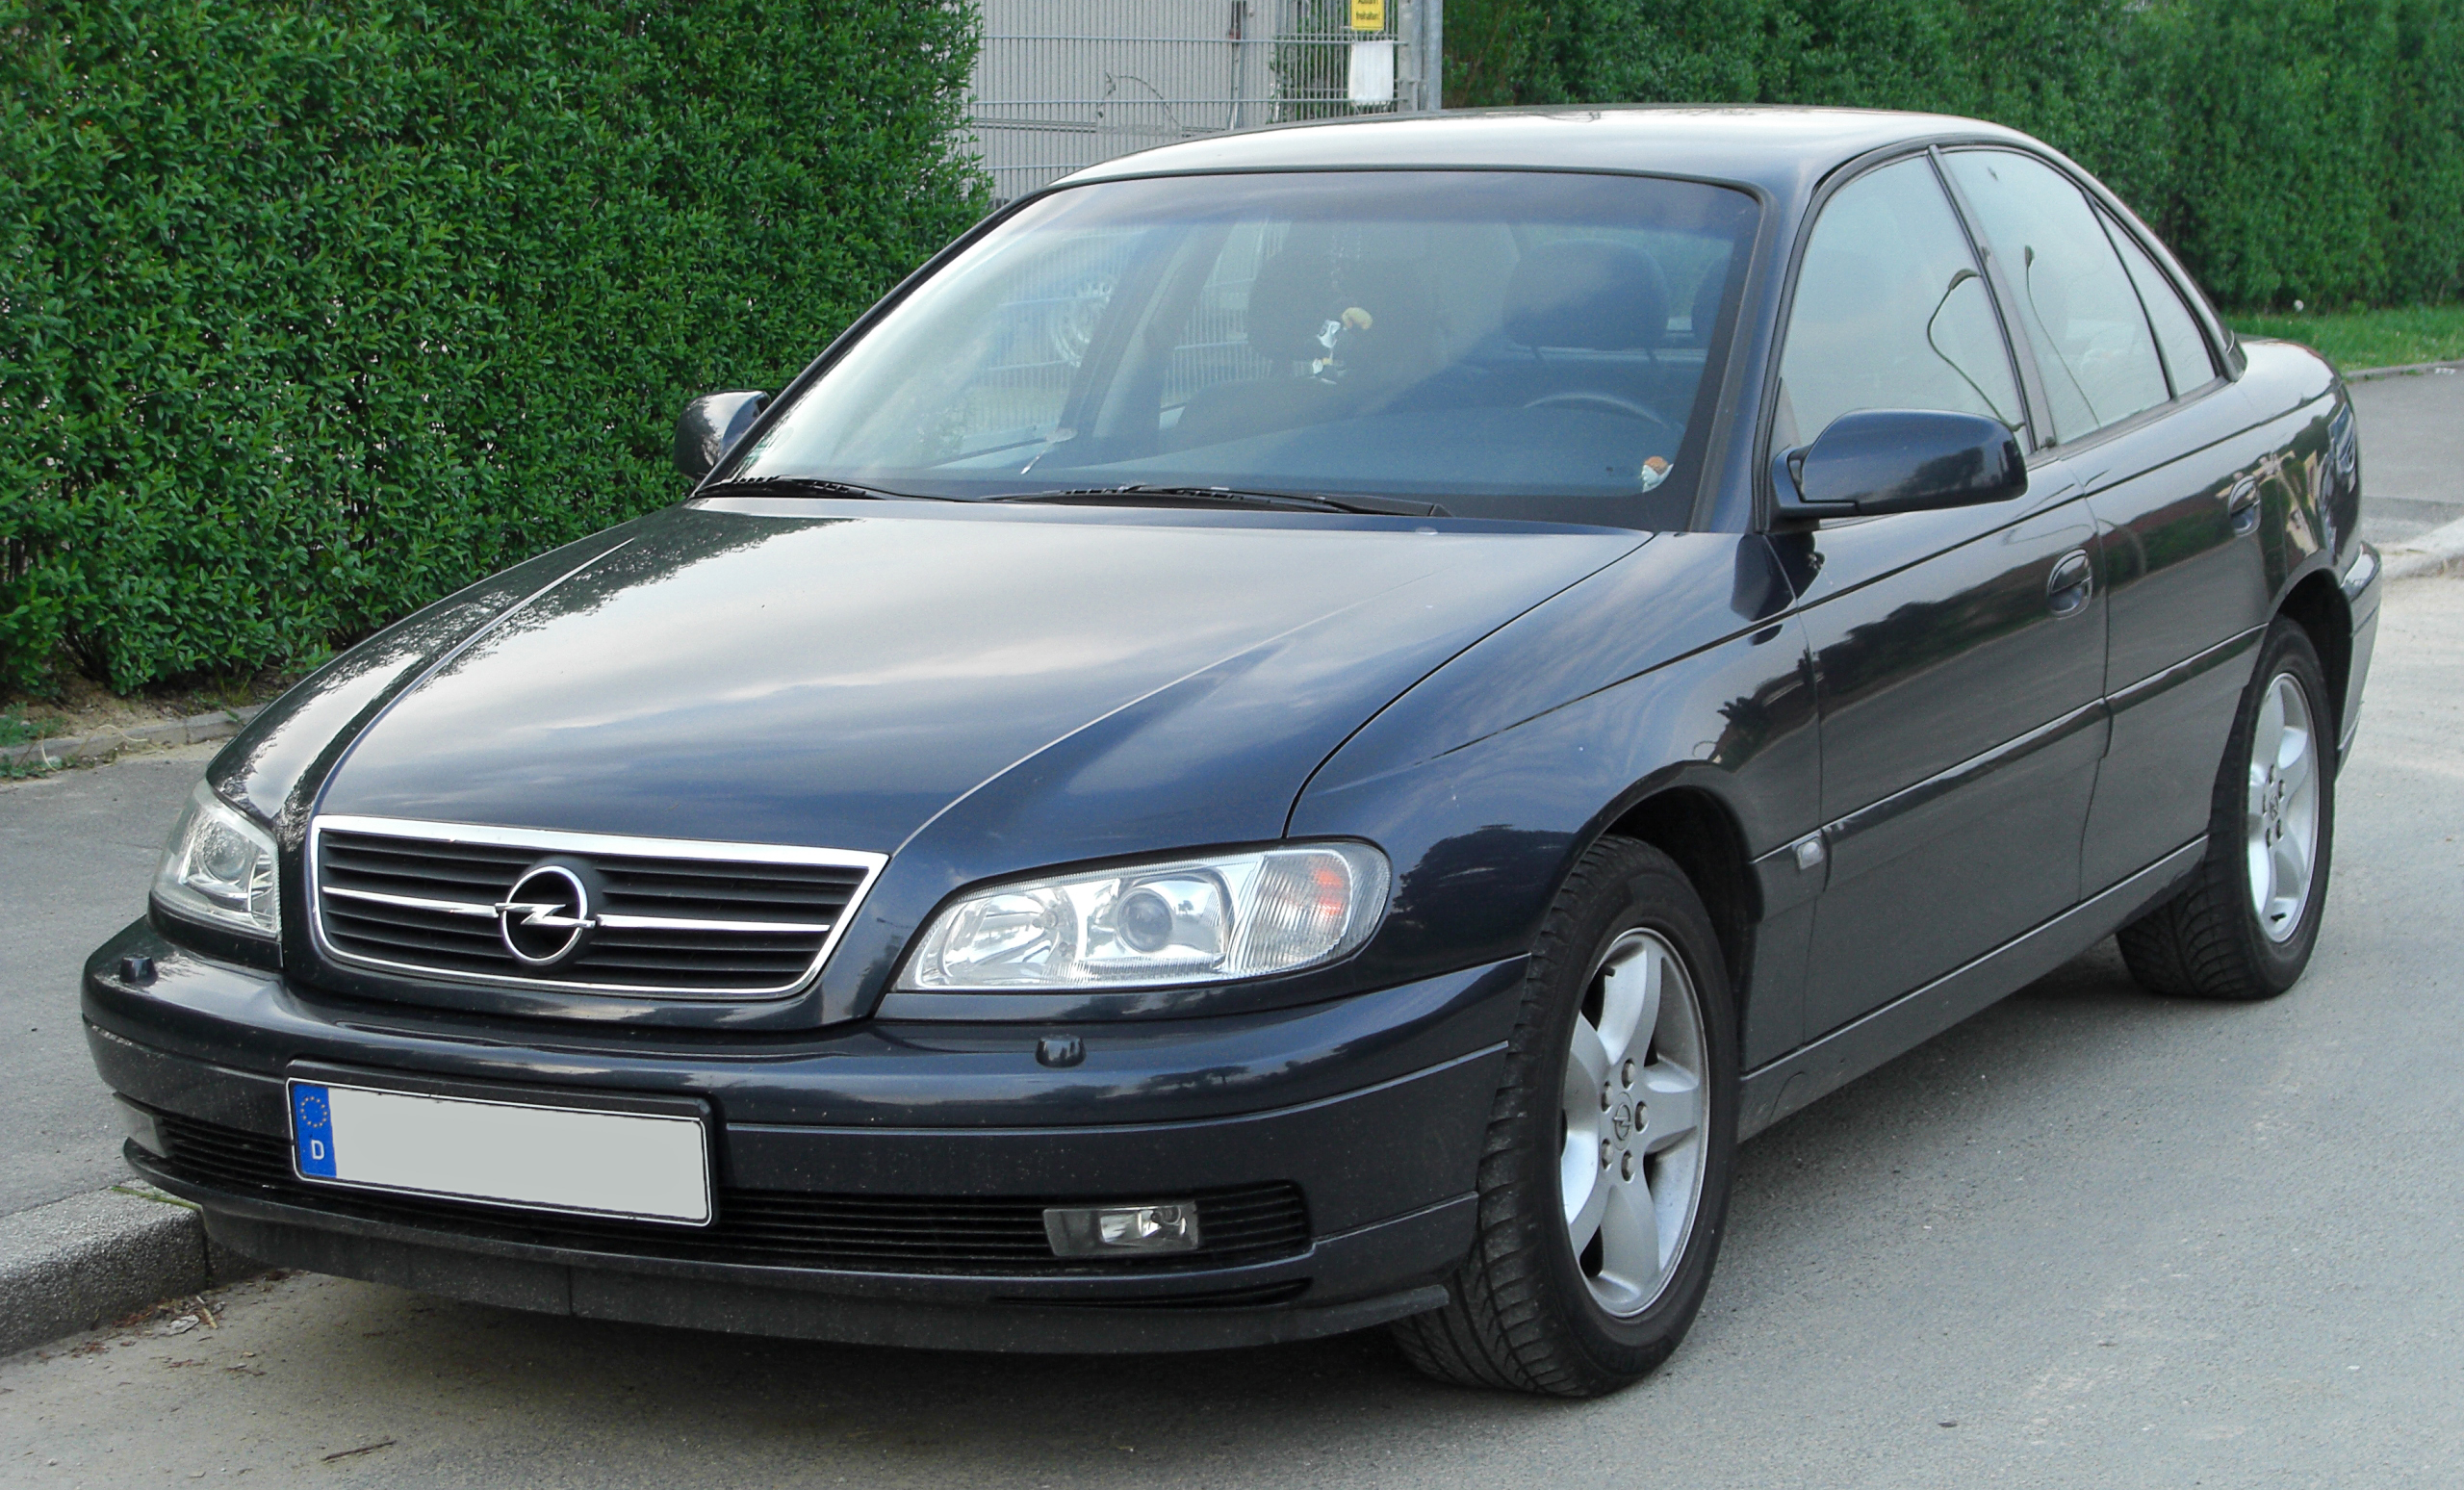 Opel Omega II 2.2i Facelift front Wallpapers HD